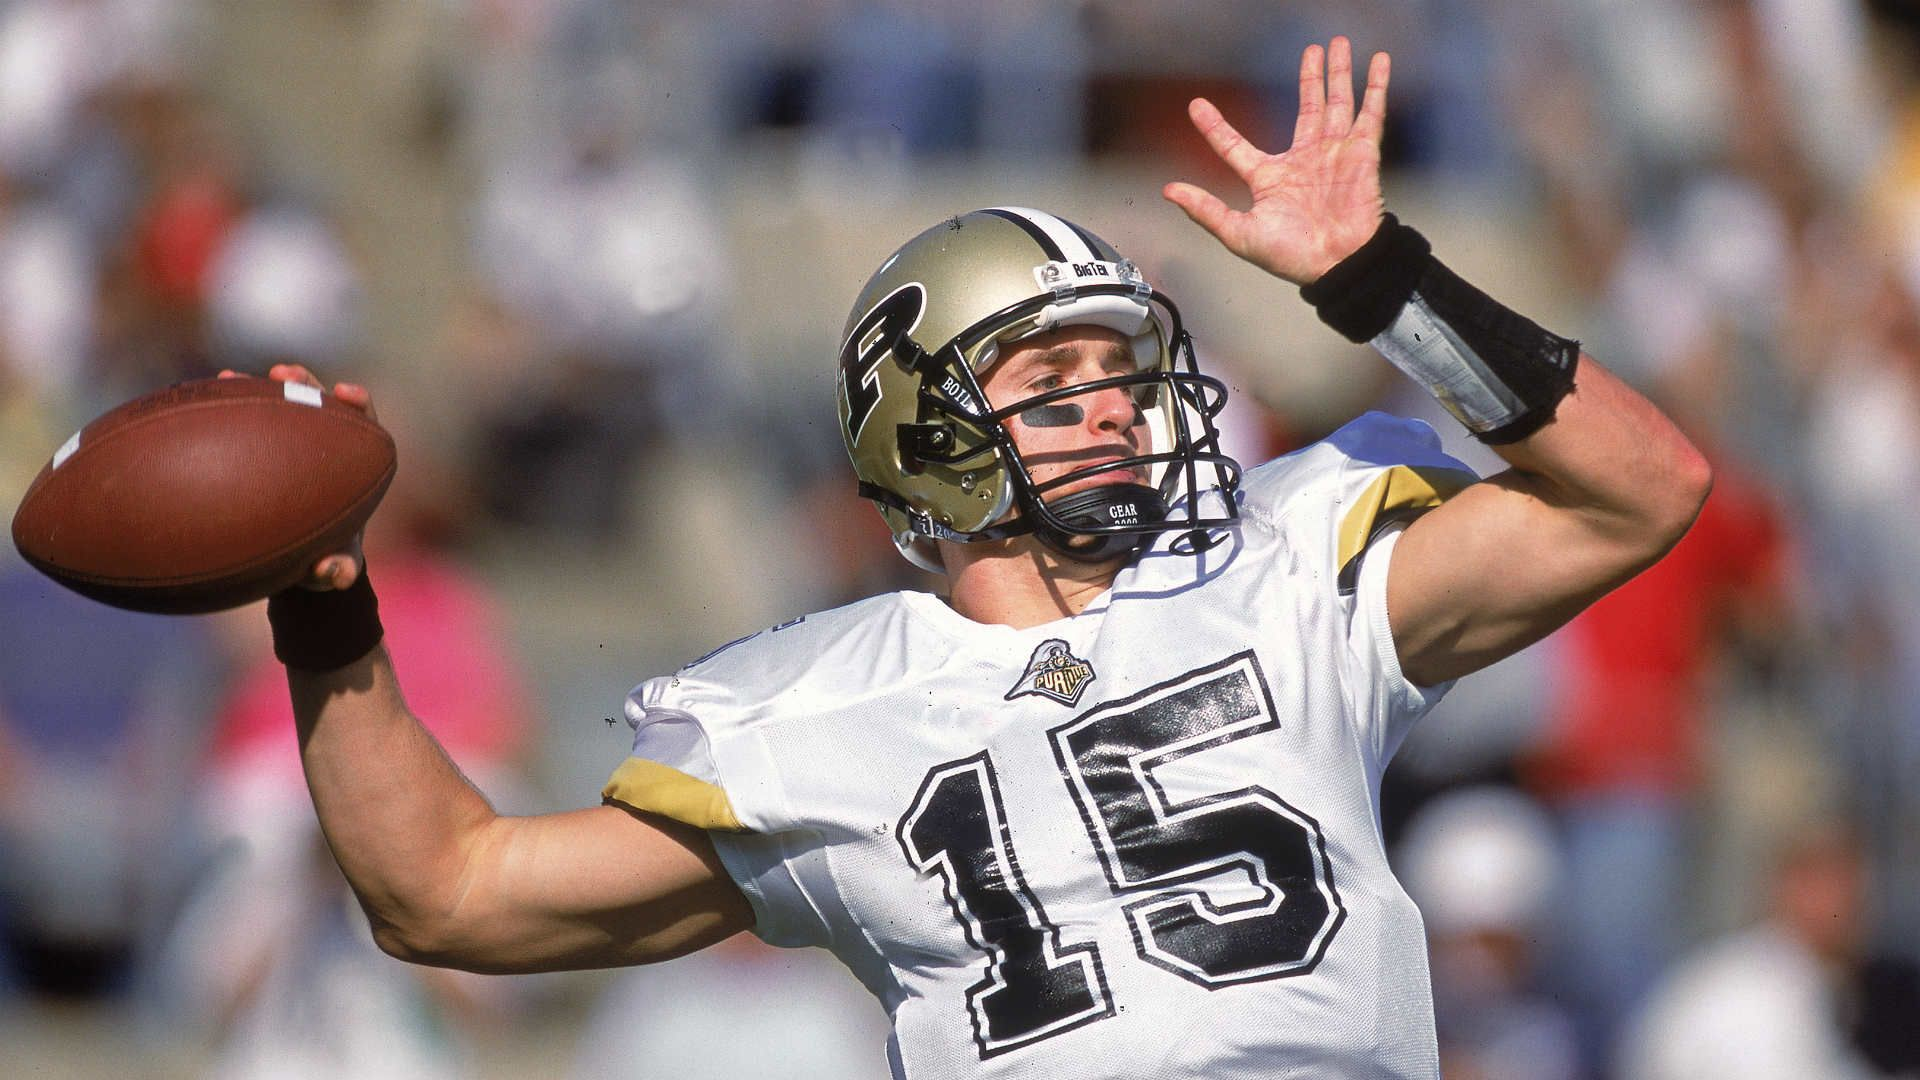 Drew At Purdue Purdue Football Ncaa Football